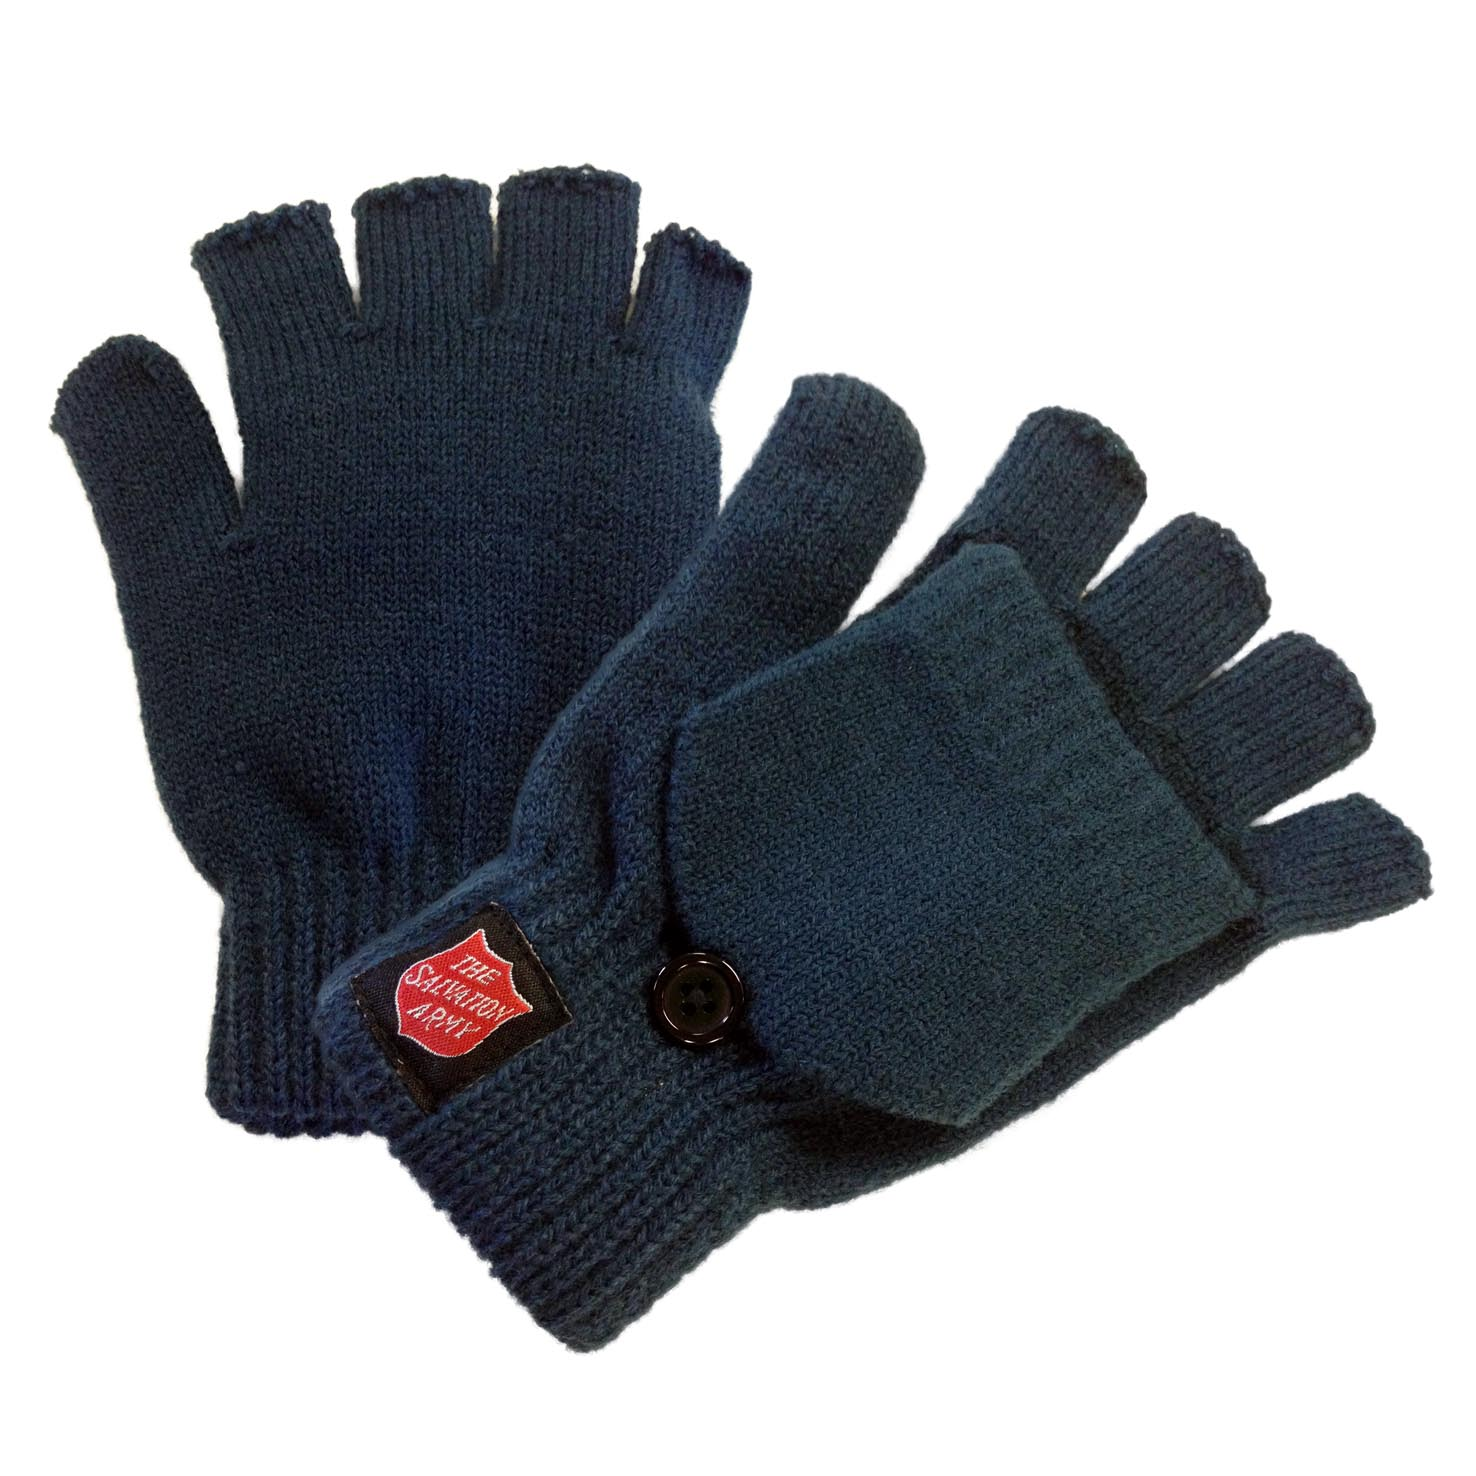 Salvation Army Gloves